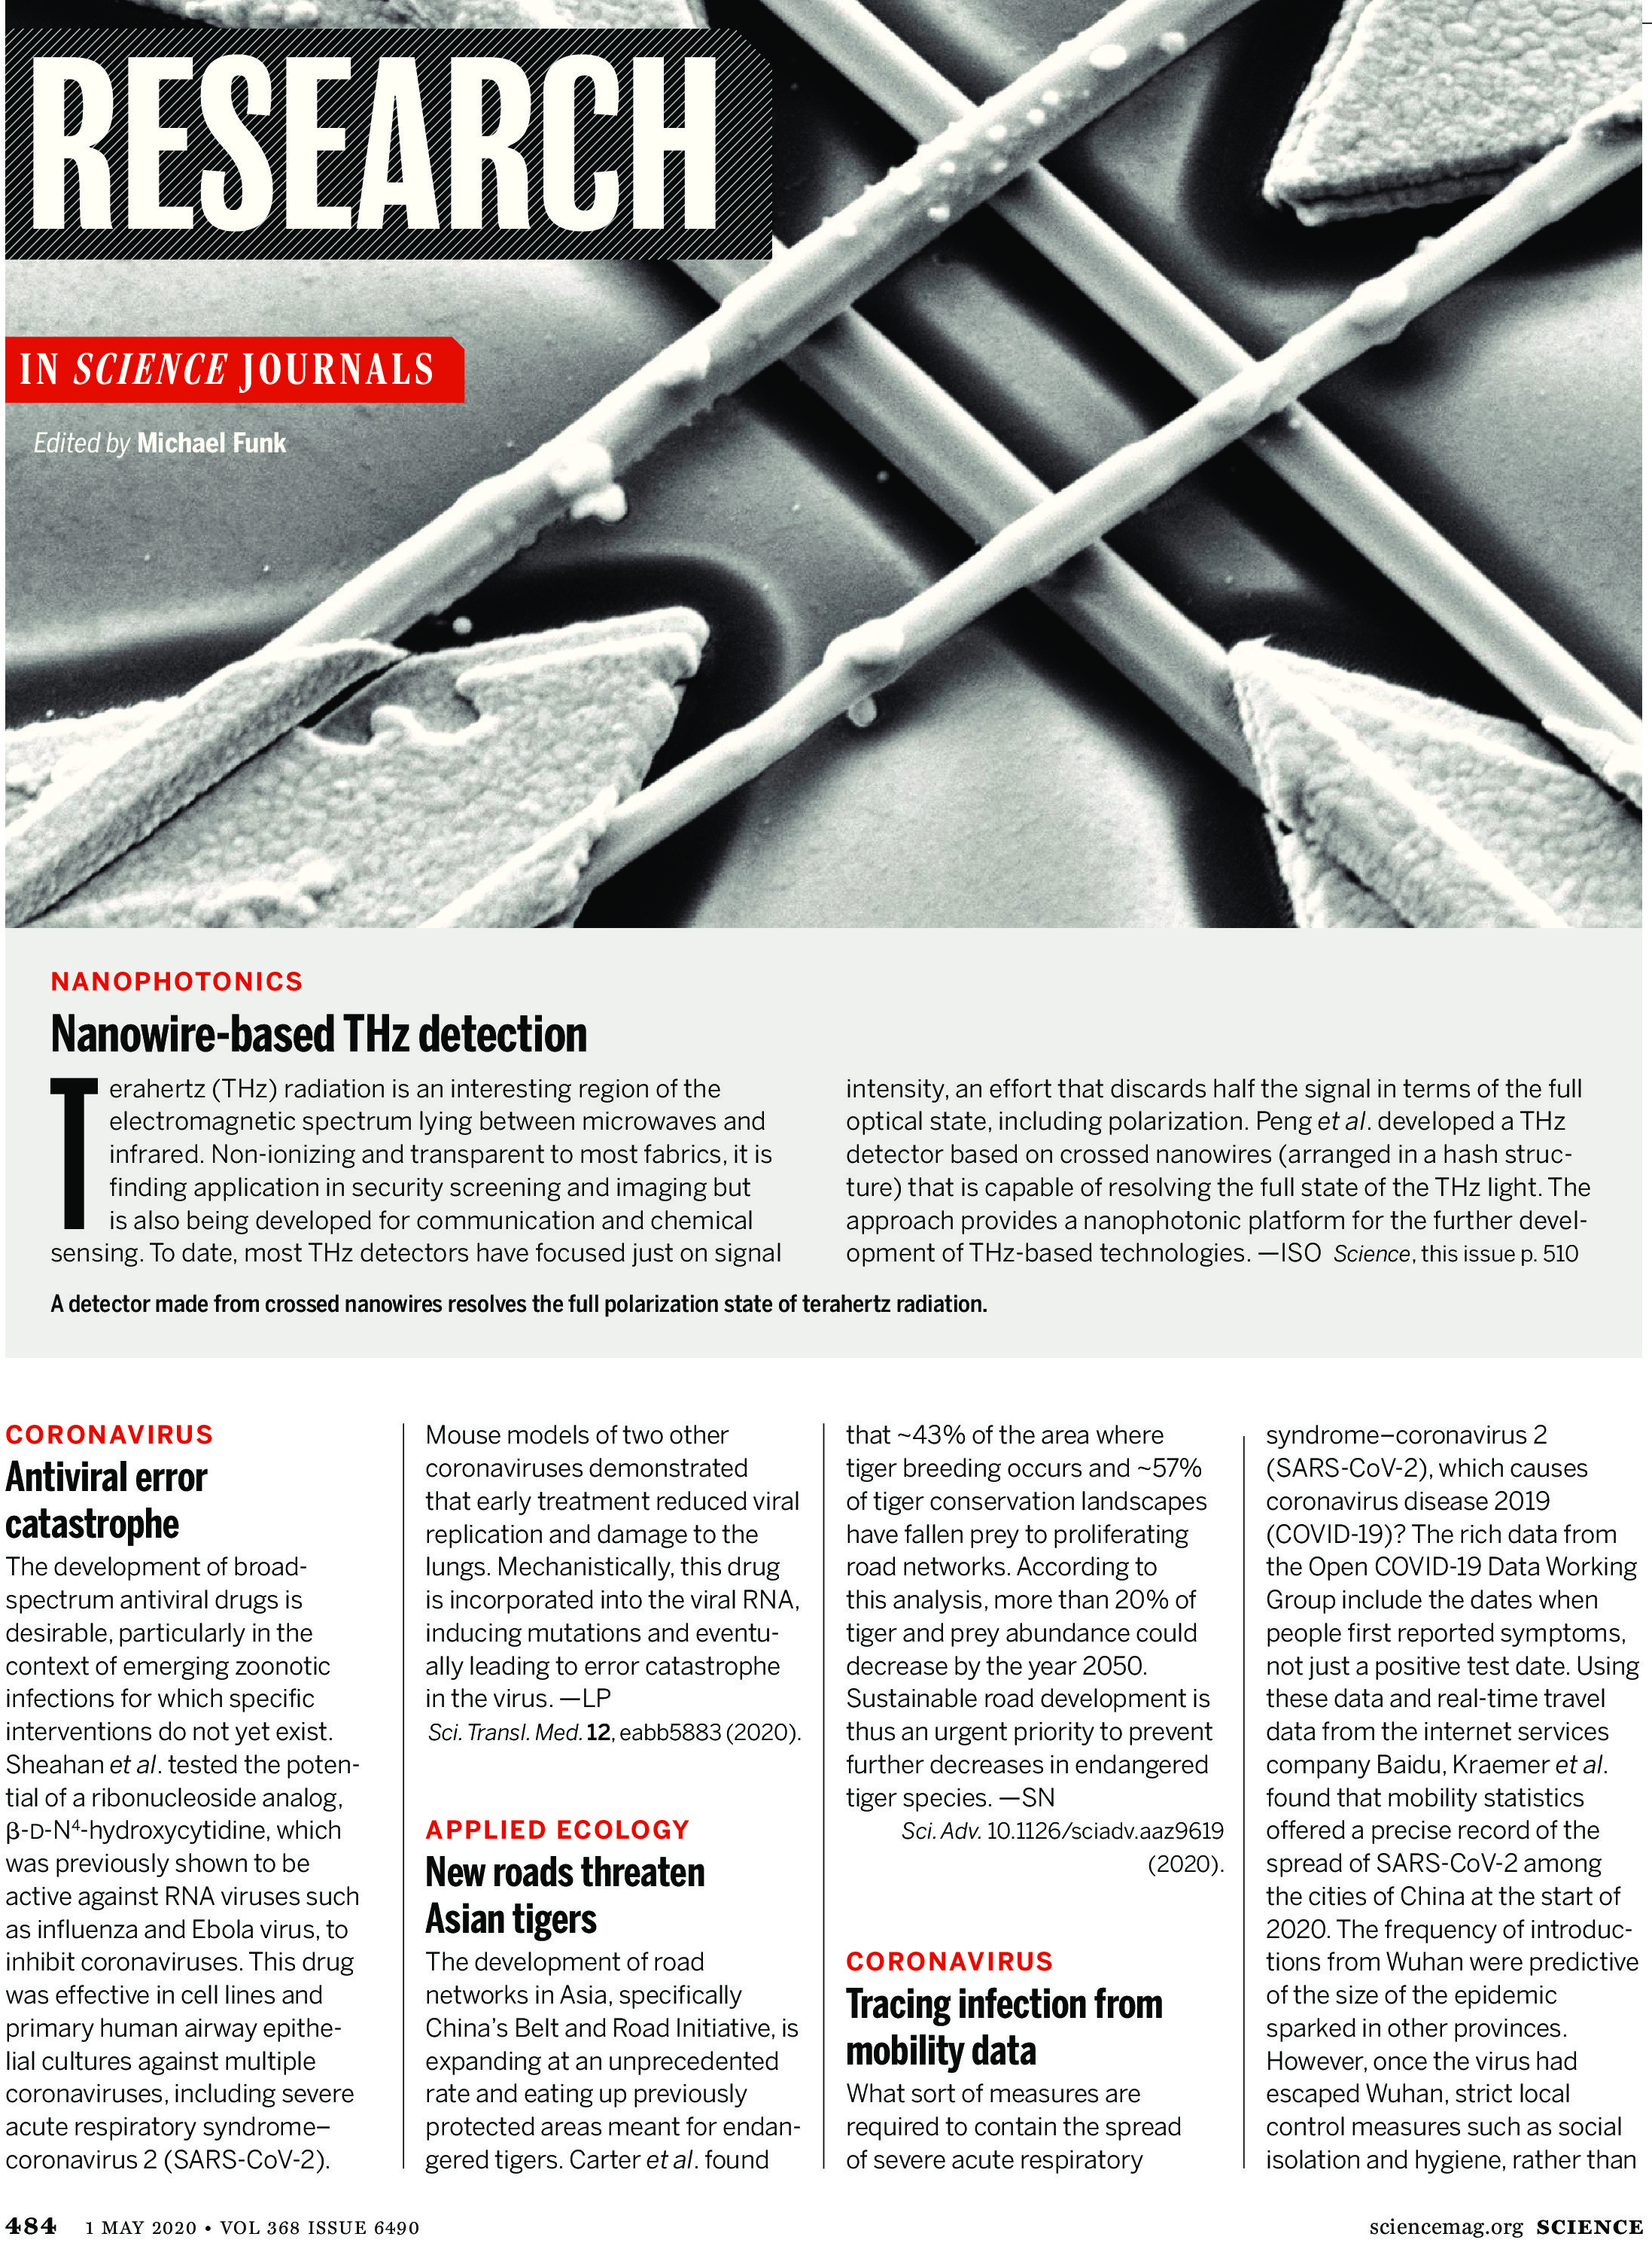 SCIENCE MAGAZINE RESEARCH HIGHLIGHTS MAY 1 2020